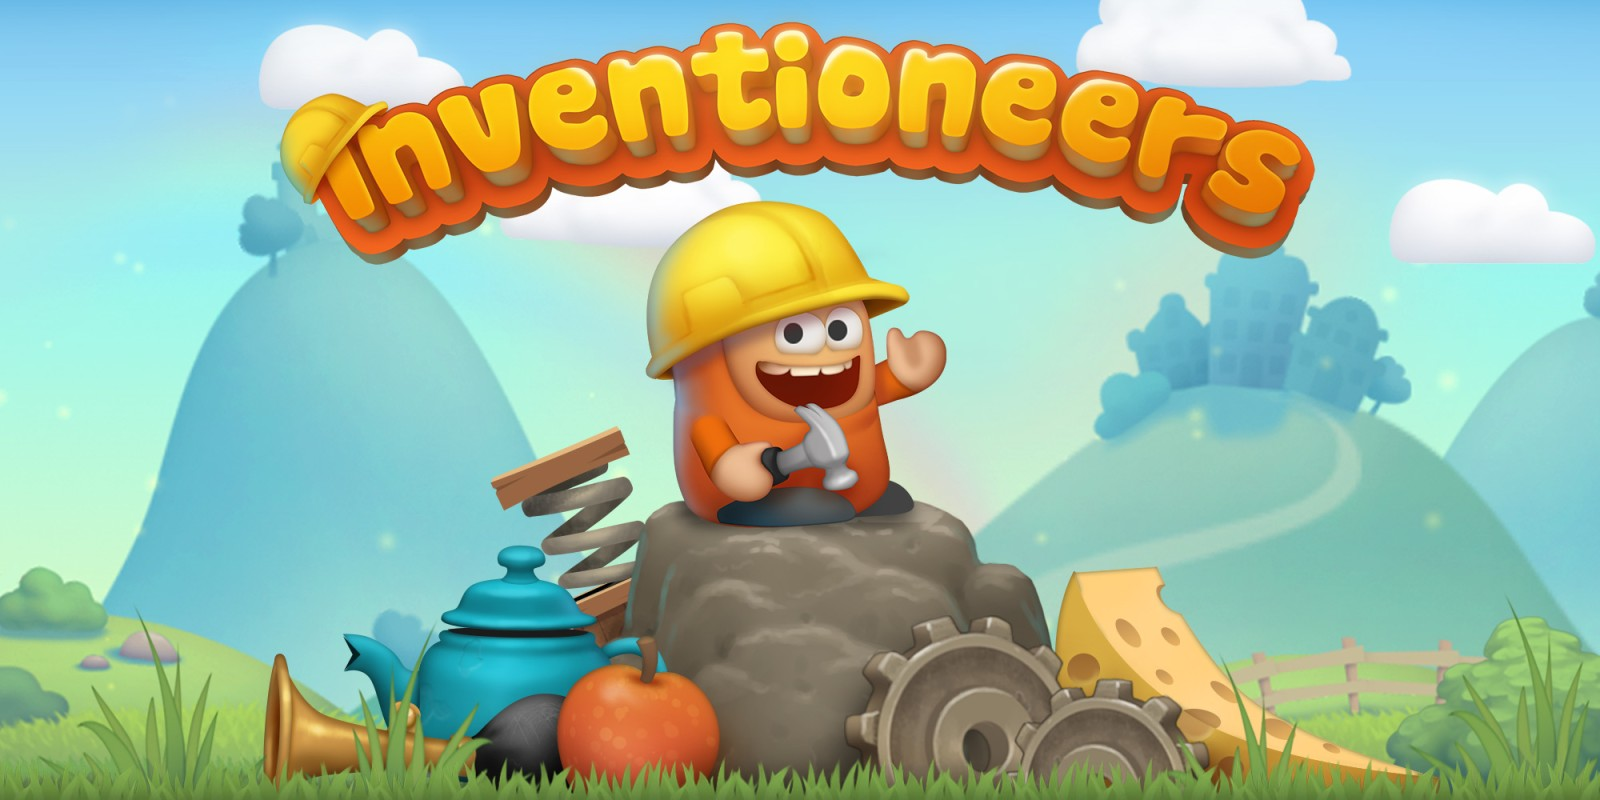 Inventioneers